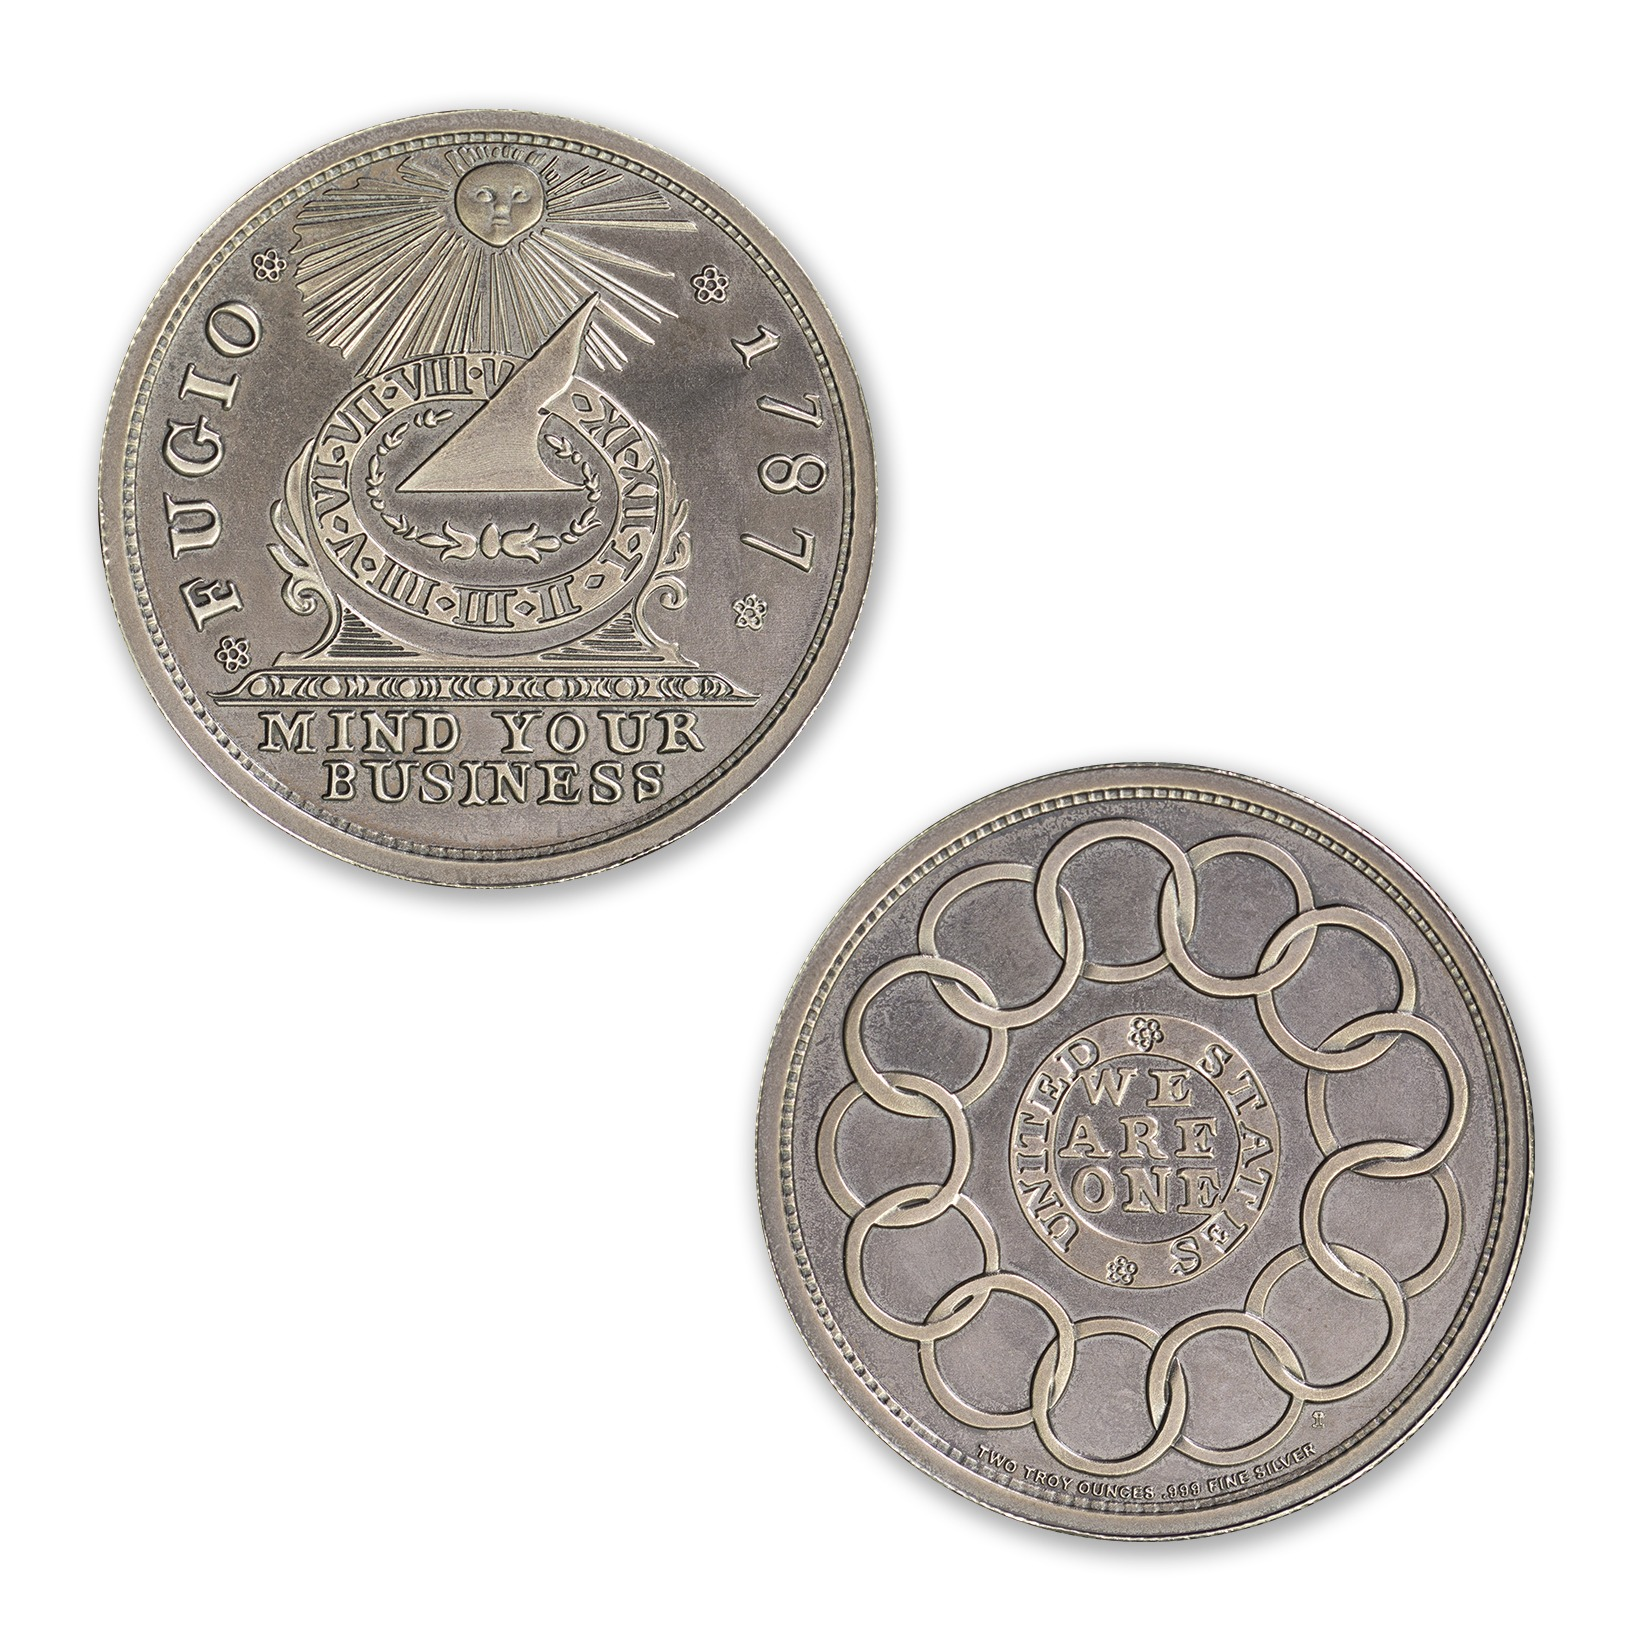 FUGIO CENT – 2 TROY OUNCE – 39MM (ANTIQUED)